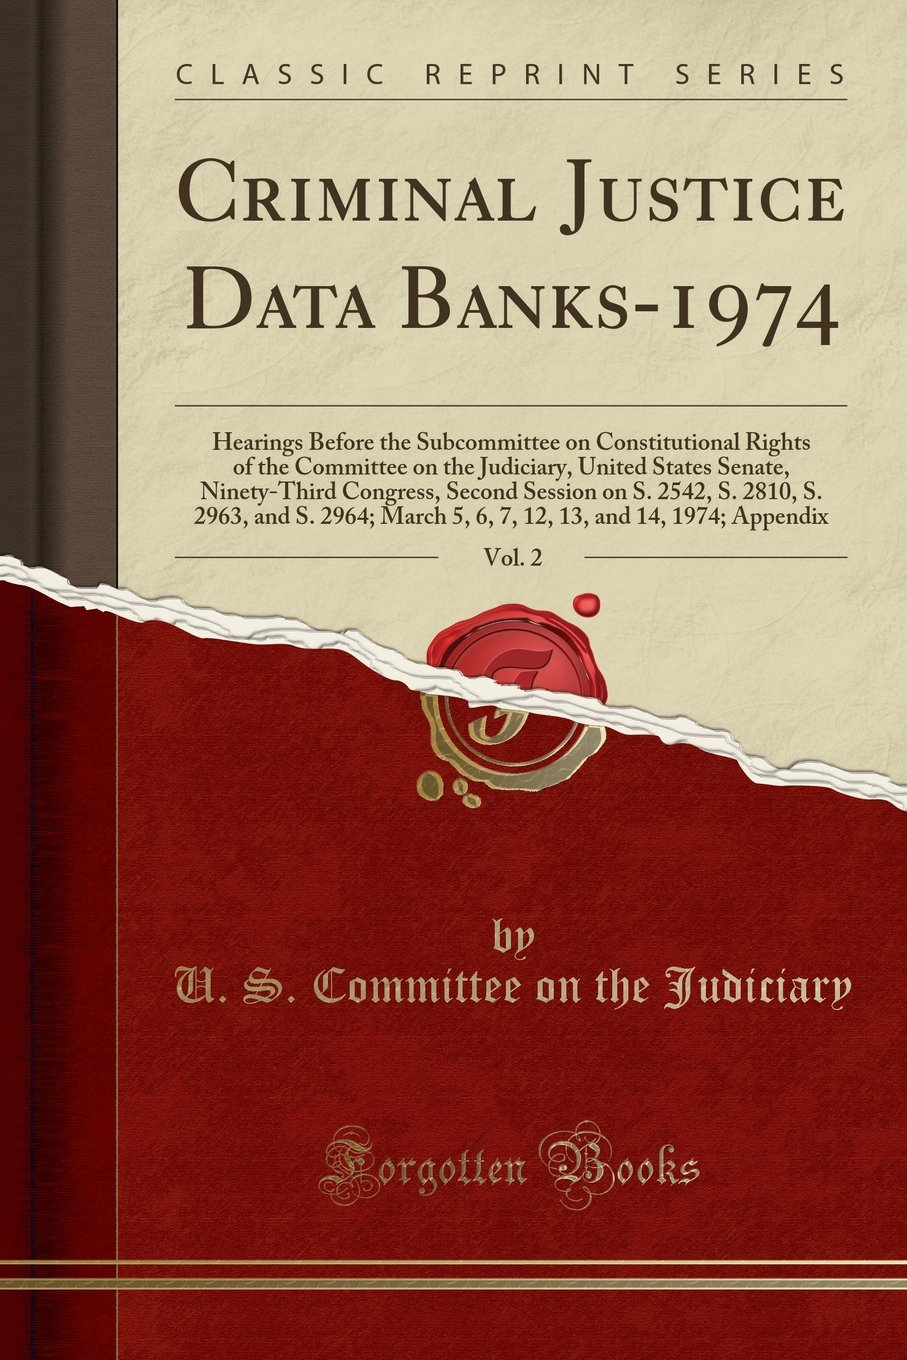 Criminal Justice Data Banks-1974, Vol. 2: Hearings Before the Subcommittee on Constitutional Rights of the Committee on the Judiciary, United States 2810, S. 2963, and S. 2964; March 5, 6, 7, 12 pdf